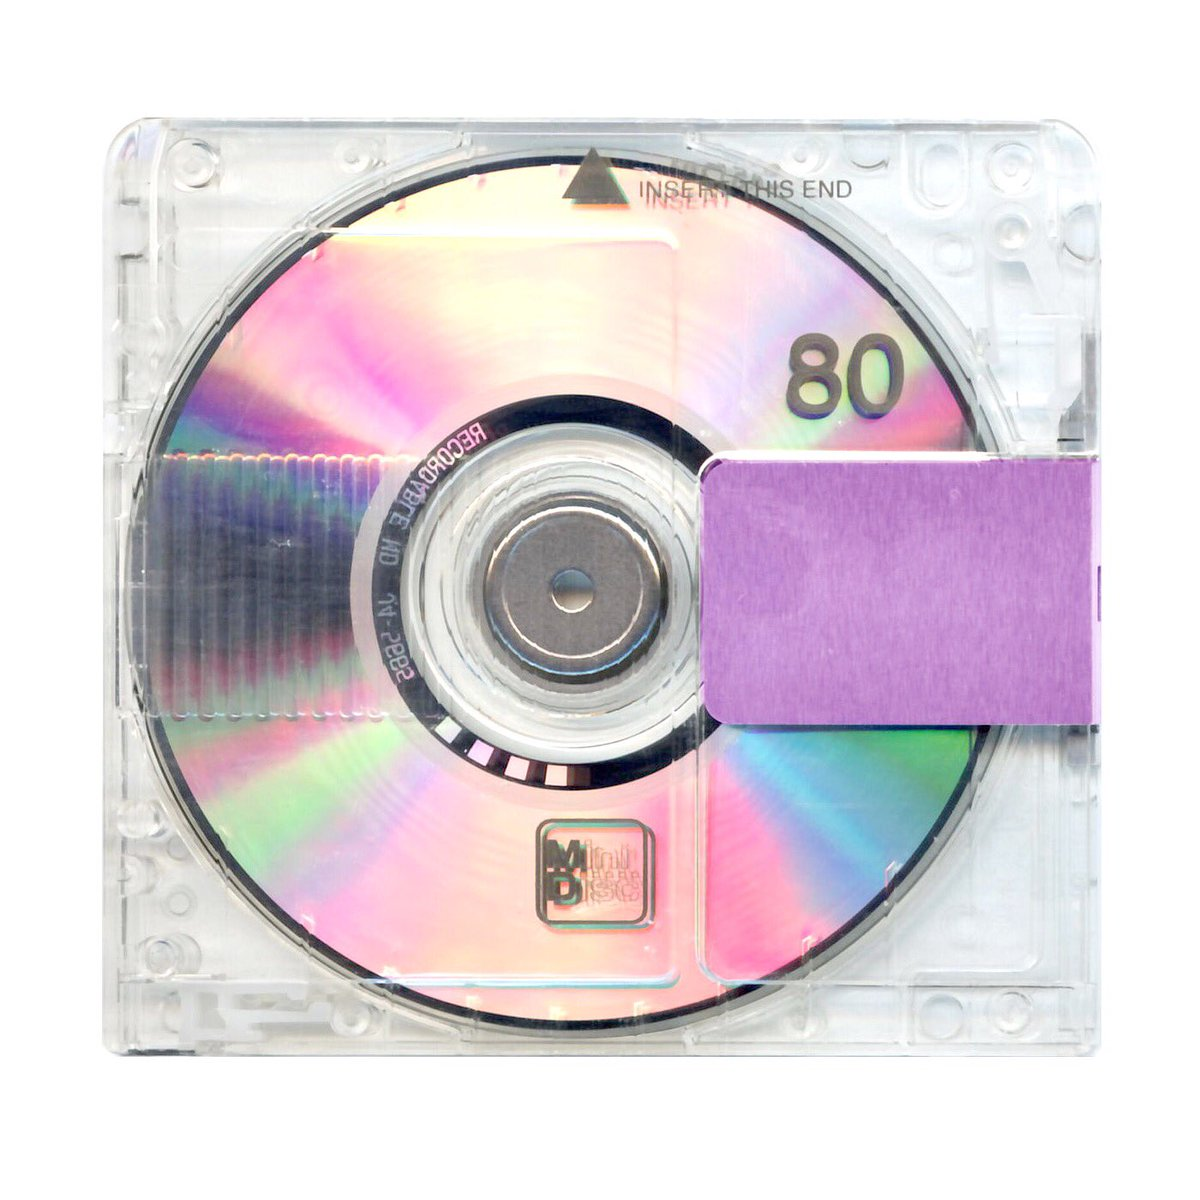 Kanye West's 'Yandhi' Album Track Length Accidentally Got Confirmed DnU5XyrVsAAq3h9